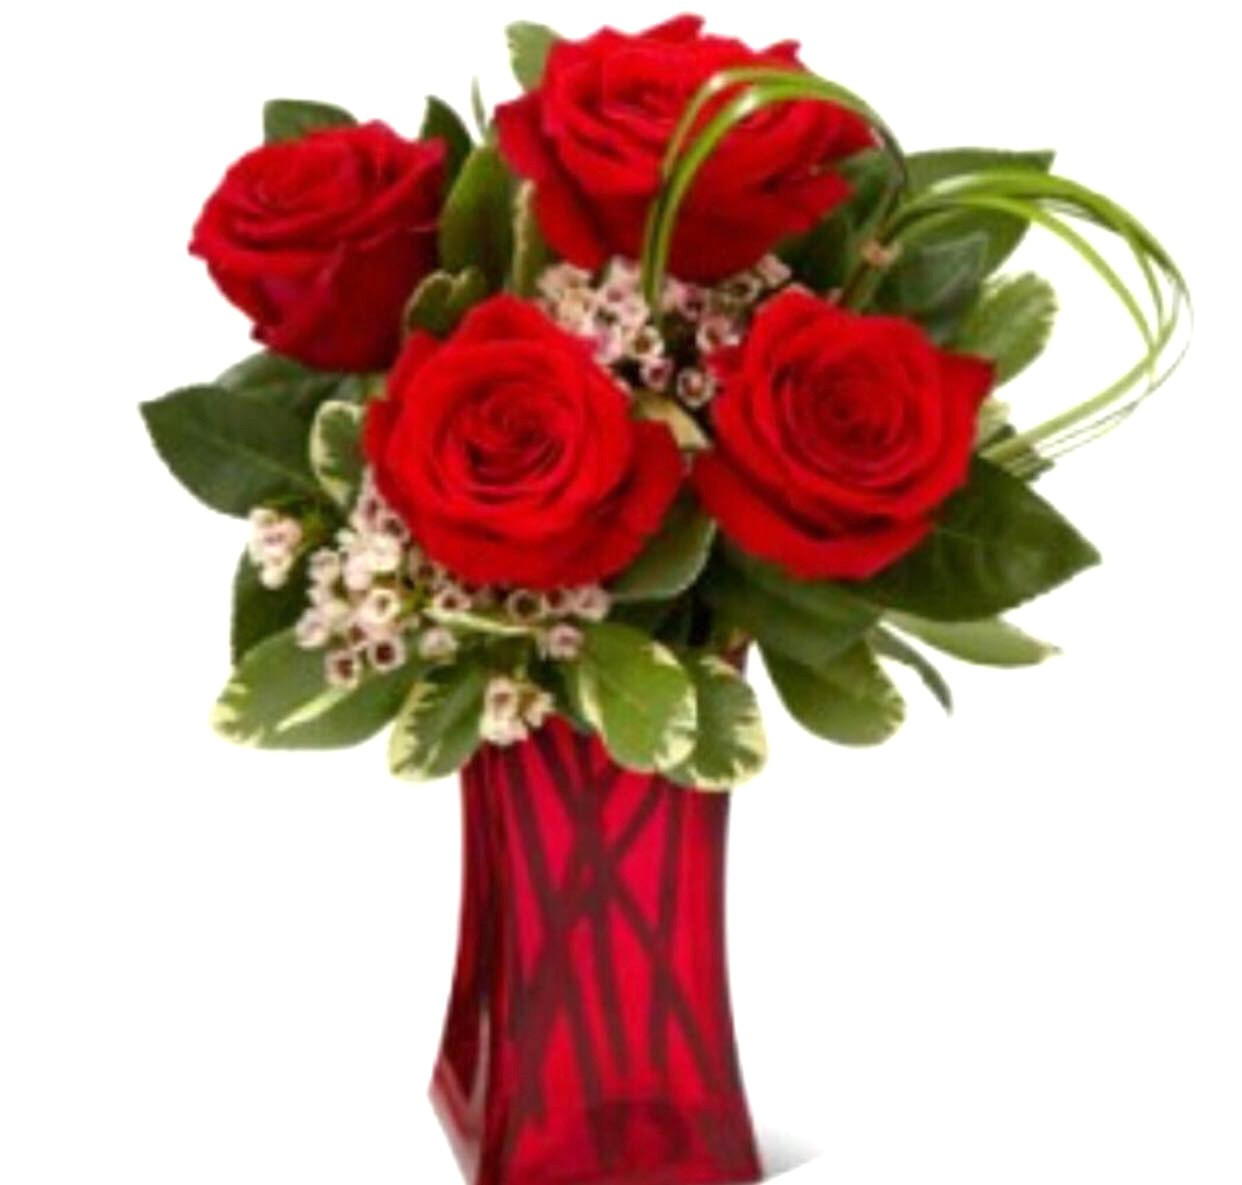 6 square vase of elegant roses in a vase pictures beginneryogaclassesnear me with regard to flower red modern 6 roses in a vaseh vases s vase vasei 0d